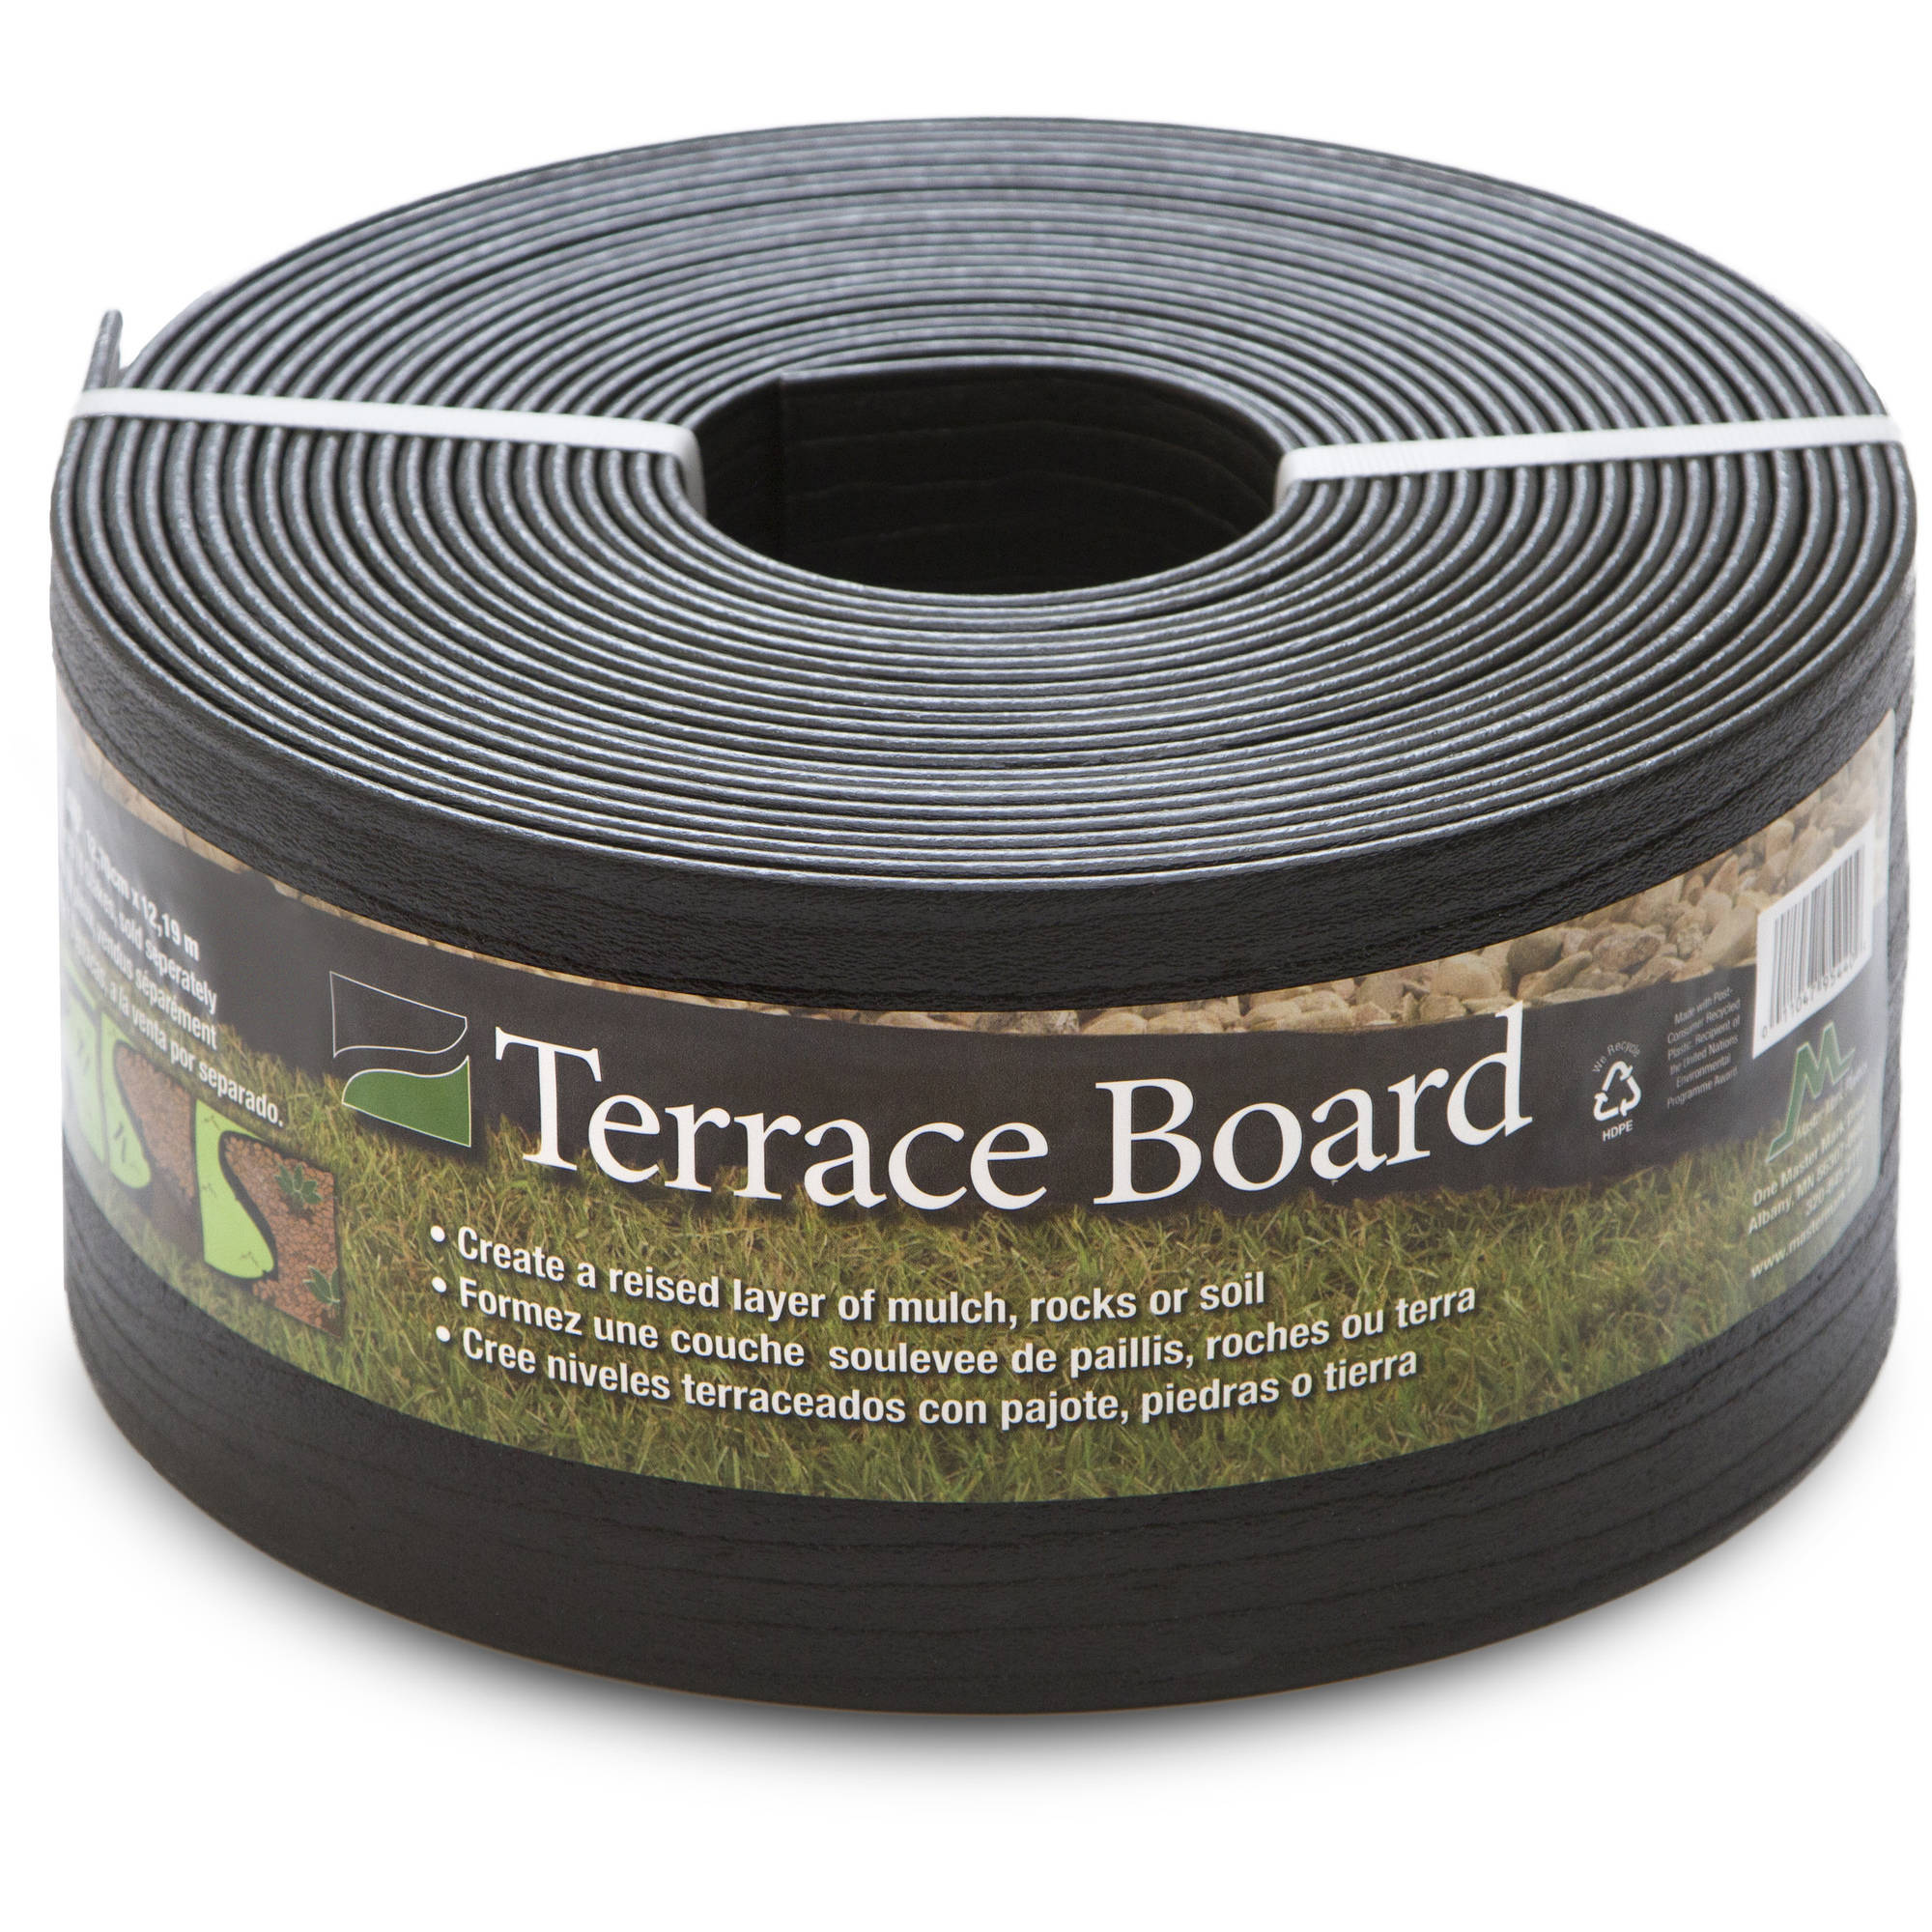 "Terrace Board, Black, 5"" x 40' with 10 Stakes"